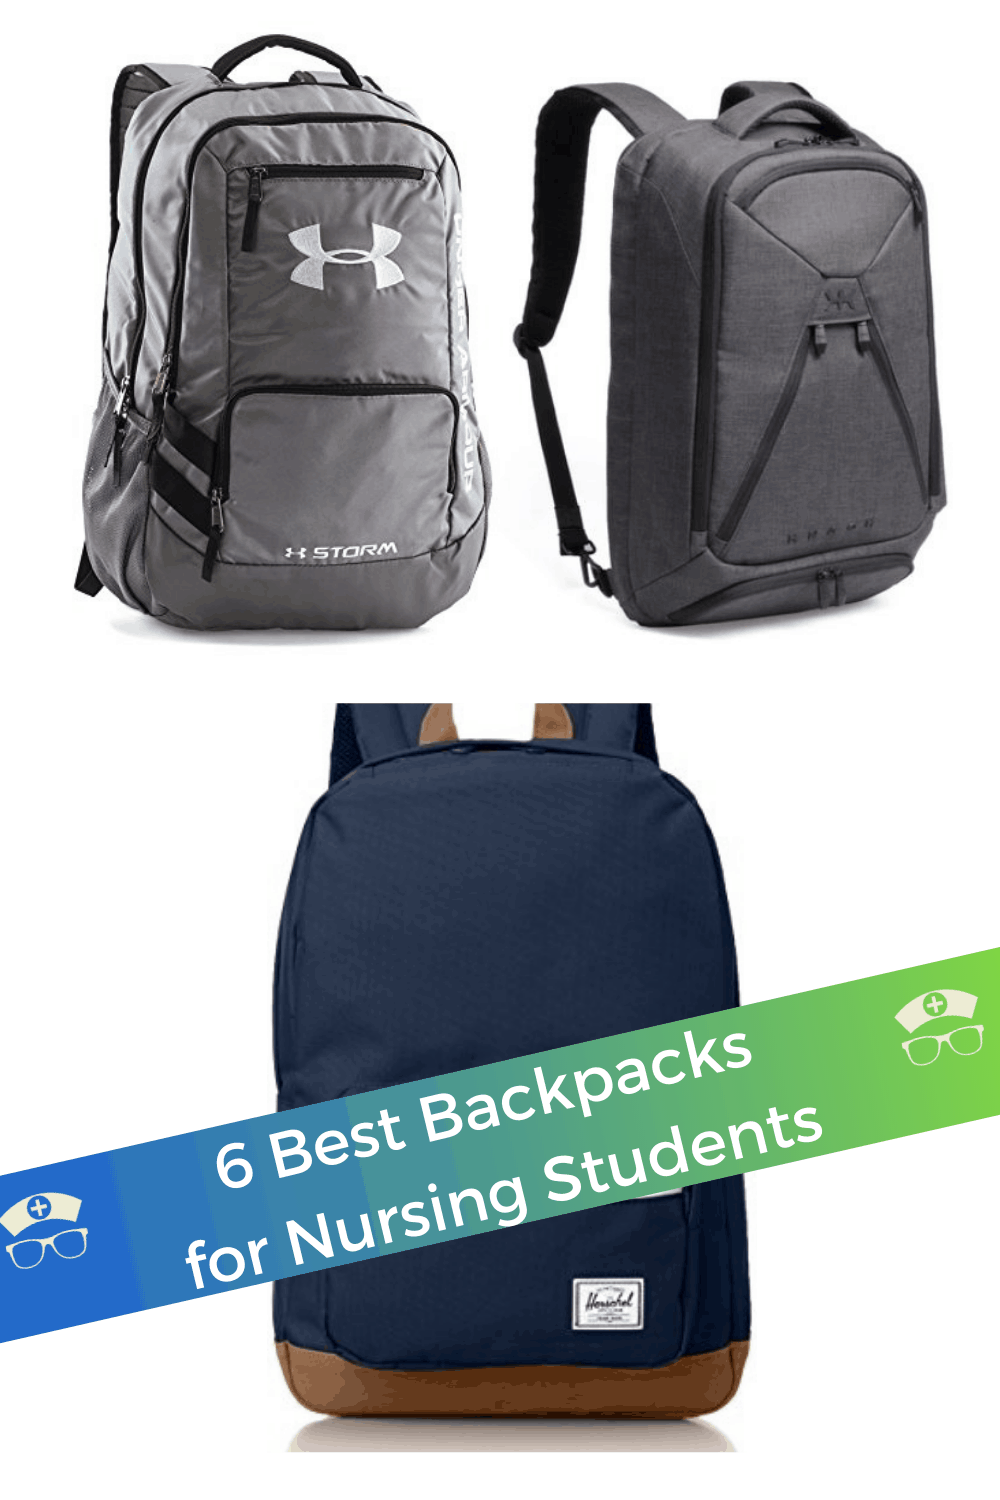 6 Best Backpacks for Nursing Students. What you need is a good backpack to carry everything. To make things much simpler we have listed top choices of best backpacks for nursing students. #thenerdynurse #nurse #nurses #nursingstudent #backpacks #backpacksfornurses #nursegear